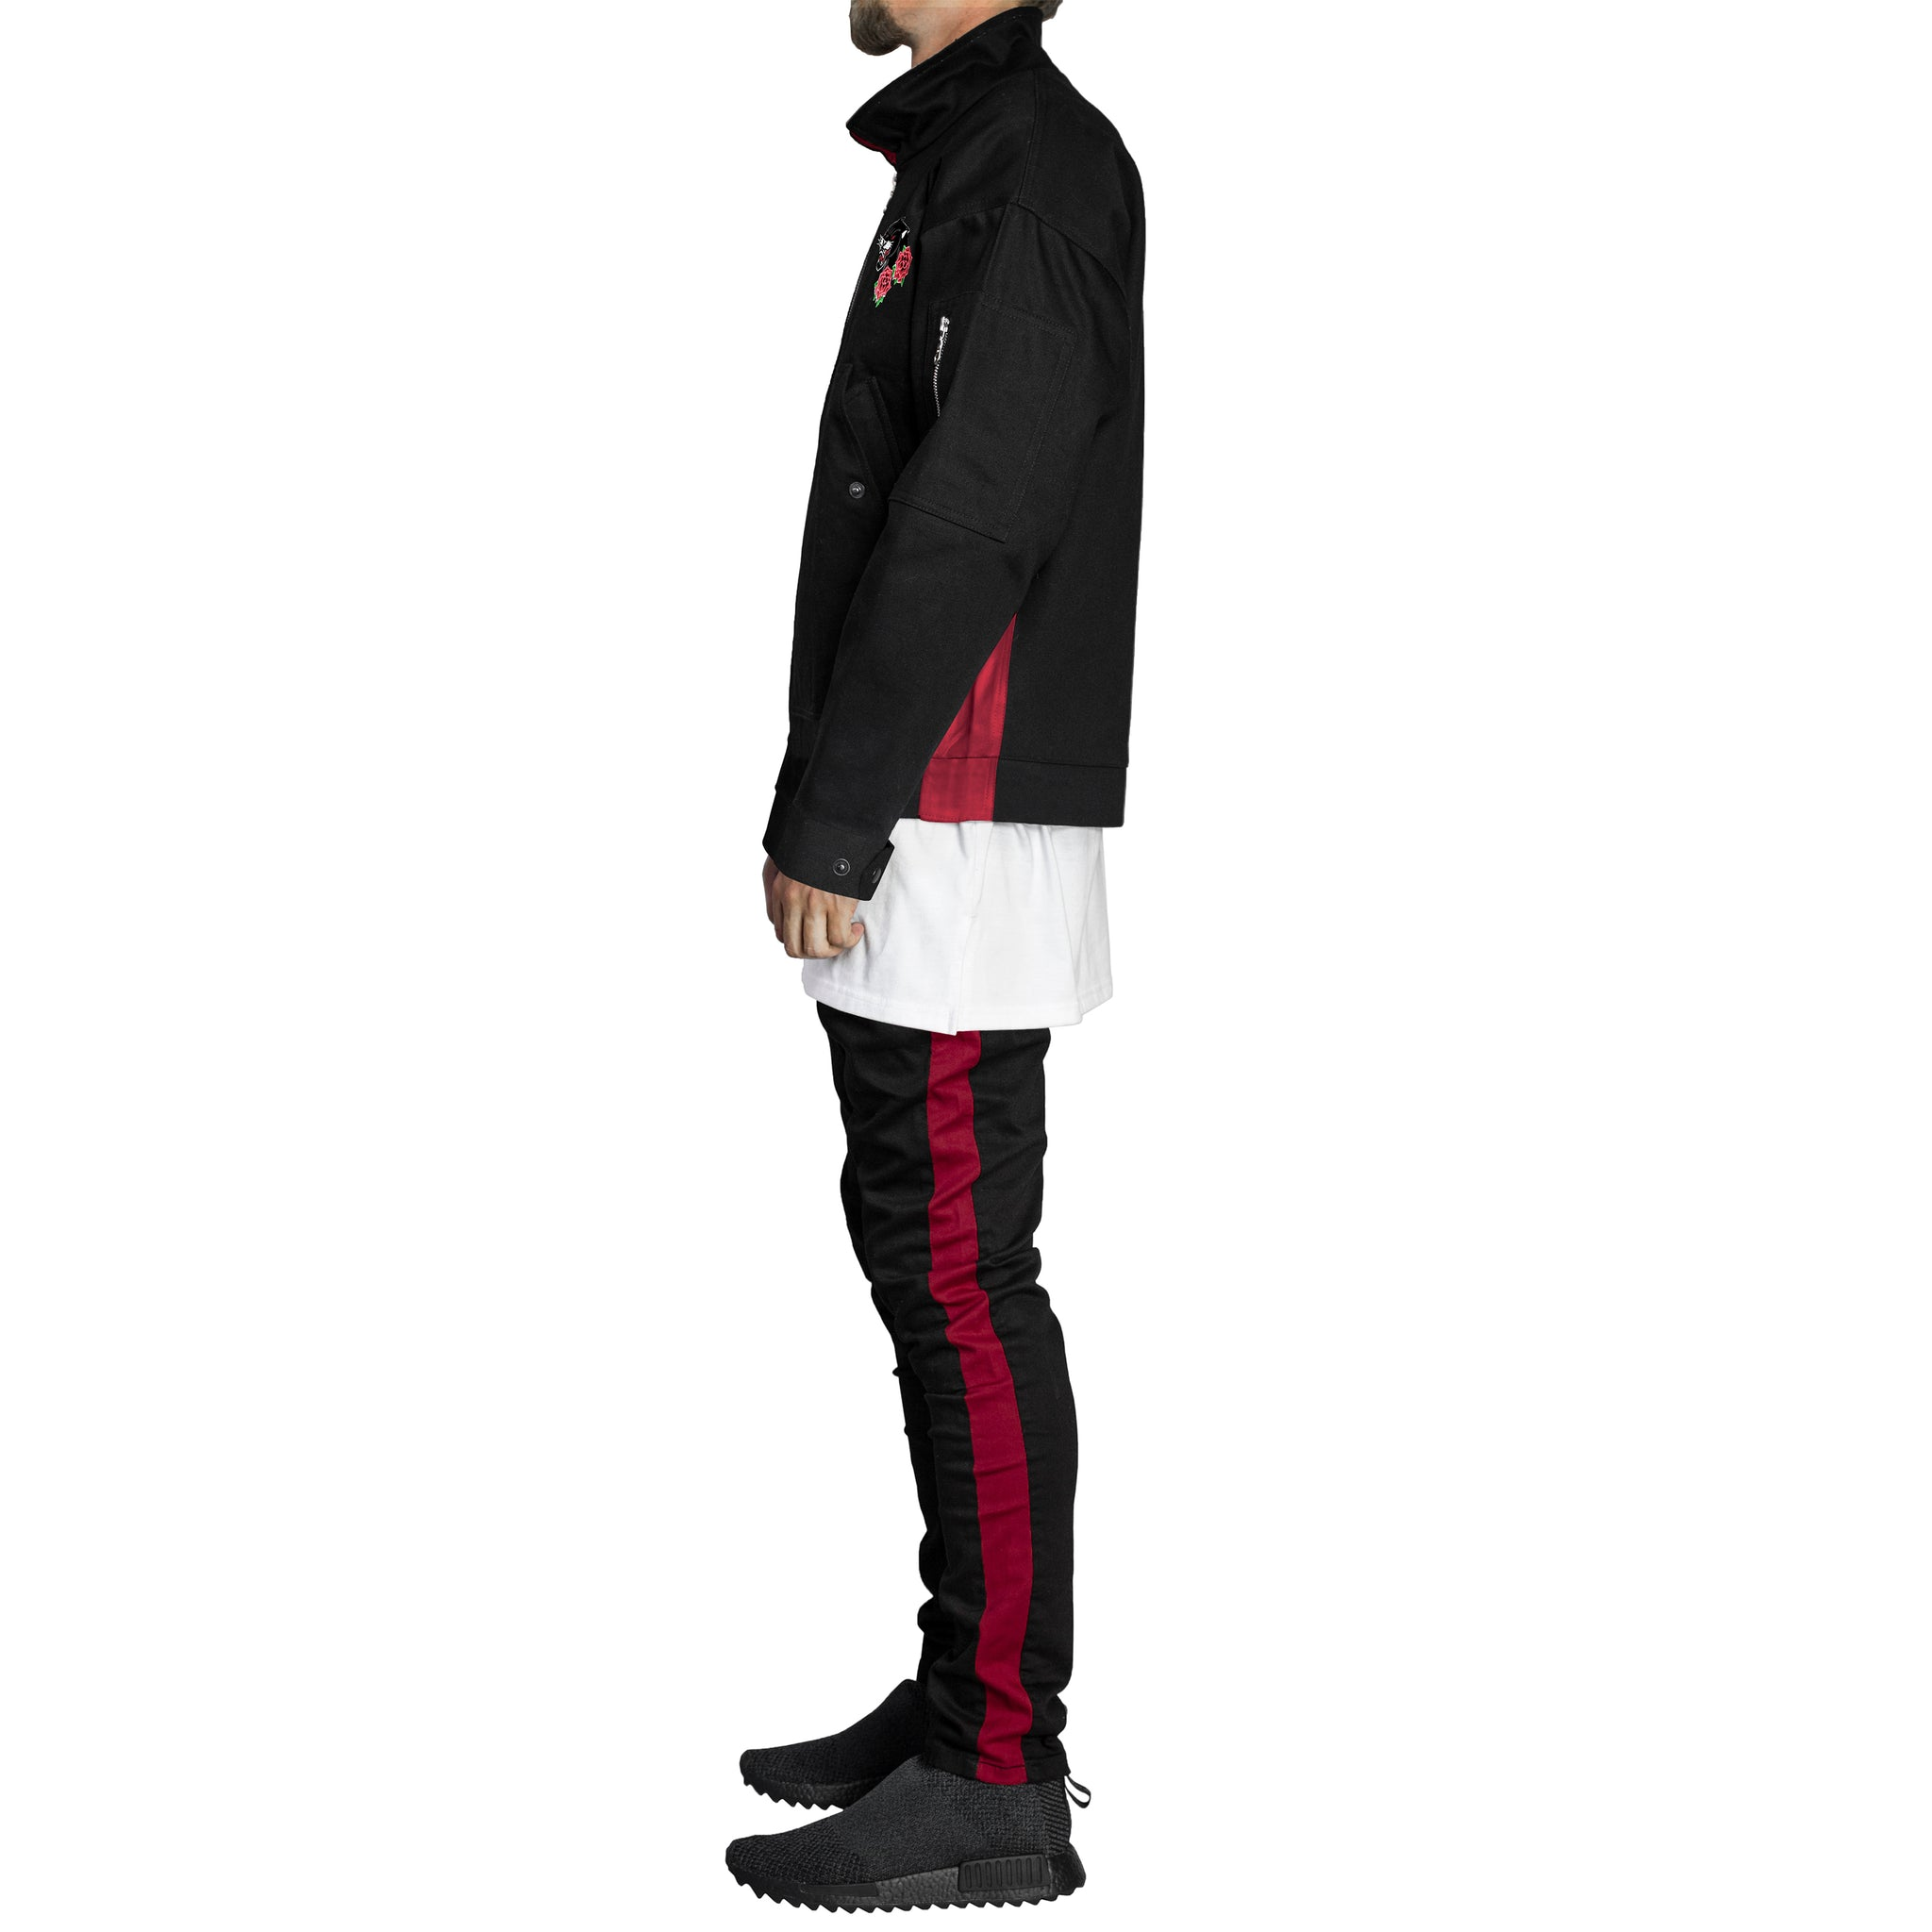 Panther Denim Fit : Black/Red